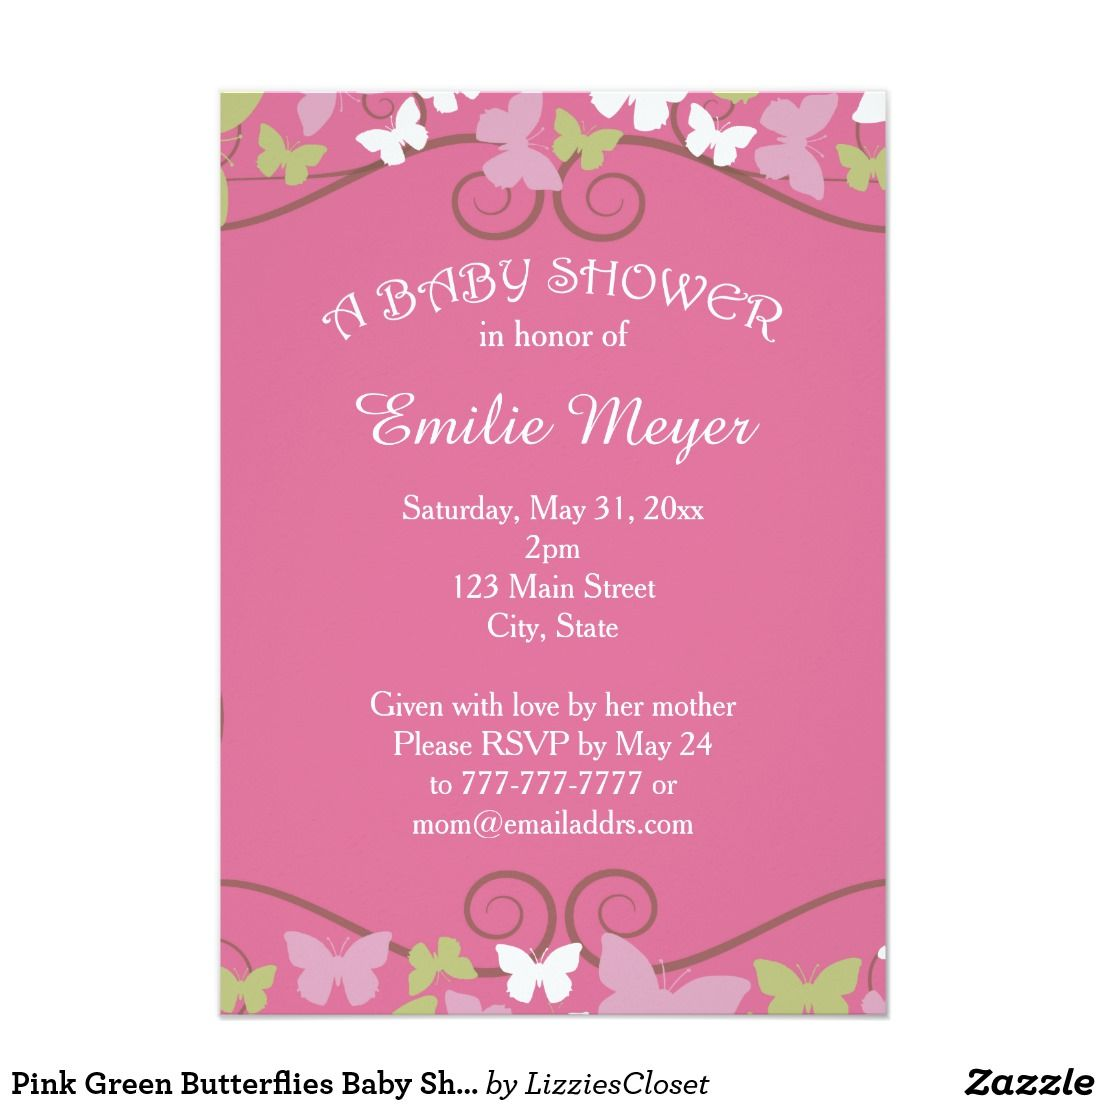 Pink Green Butterflies Baby Shower Invitation   Butterfly baby ...